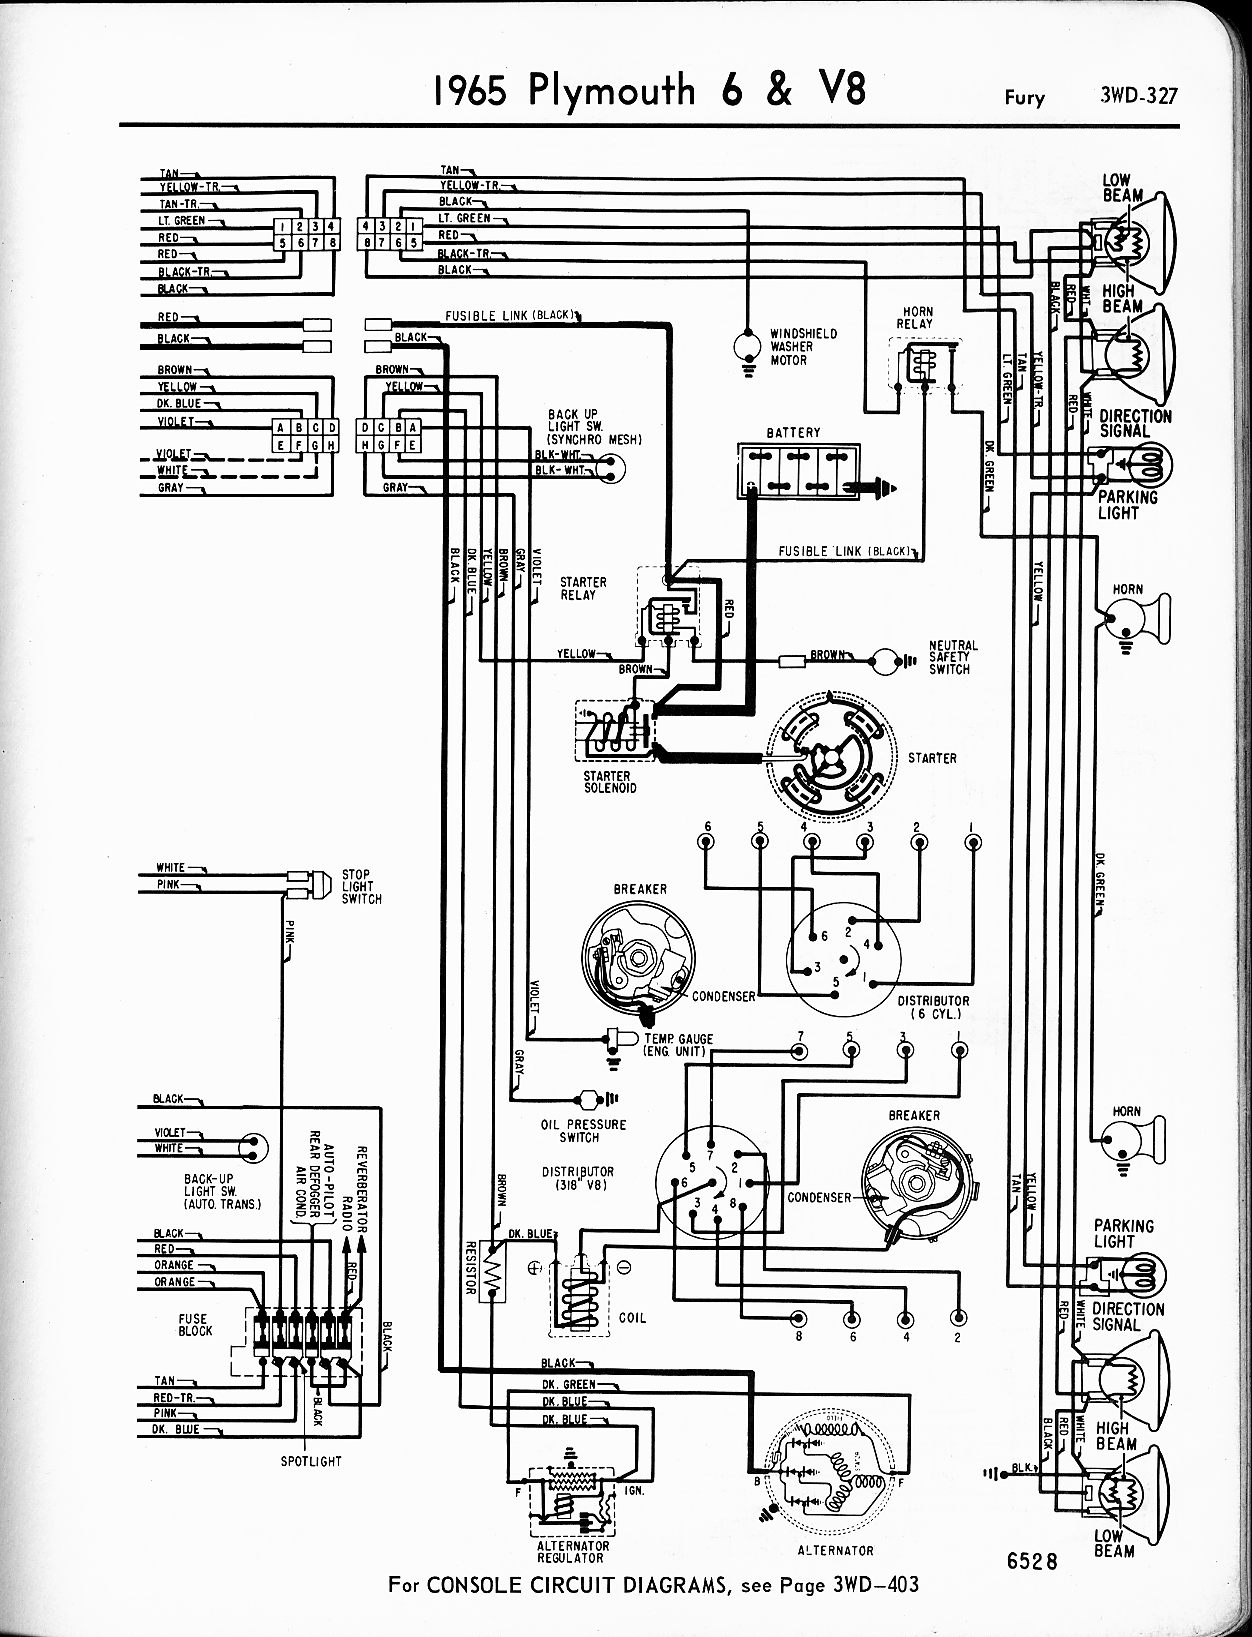 MWire5765 327 plymouth wiring schematics plymouth wiring diagrams instruction 1954 plymouth belvedere wiring diagram at crackthecode.co